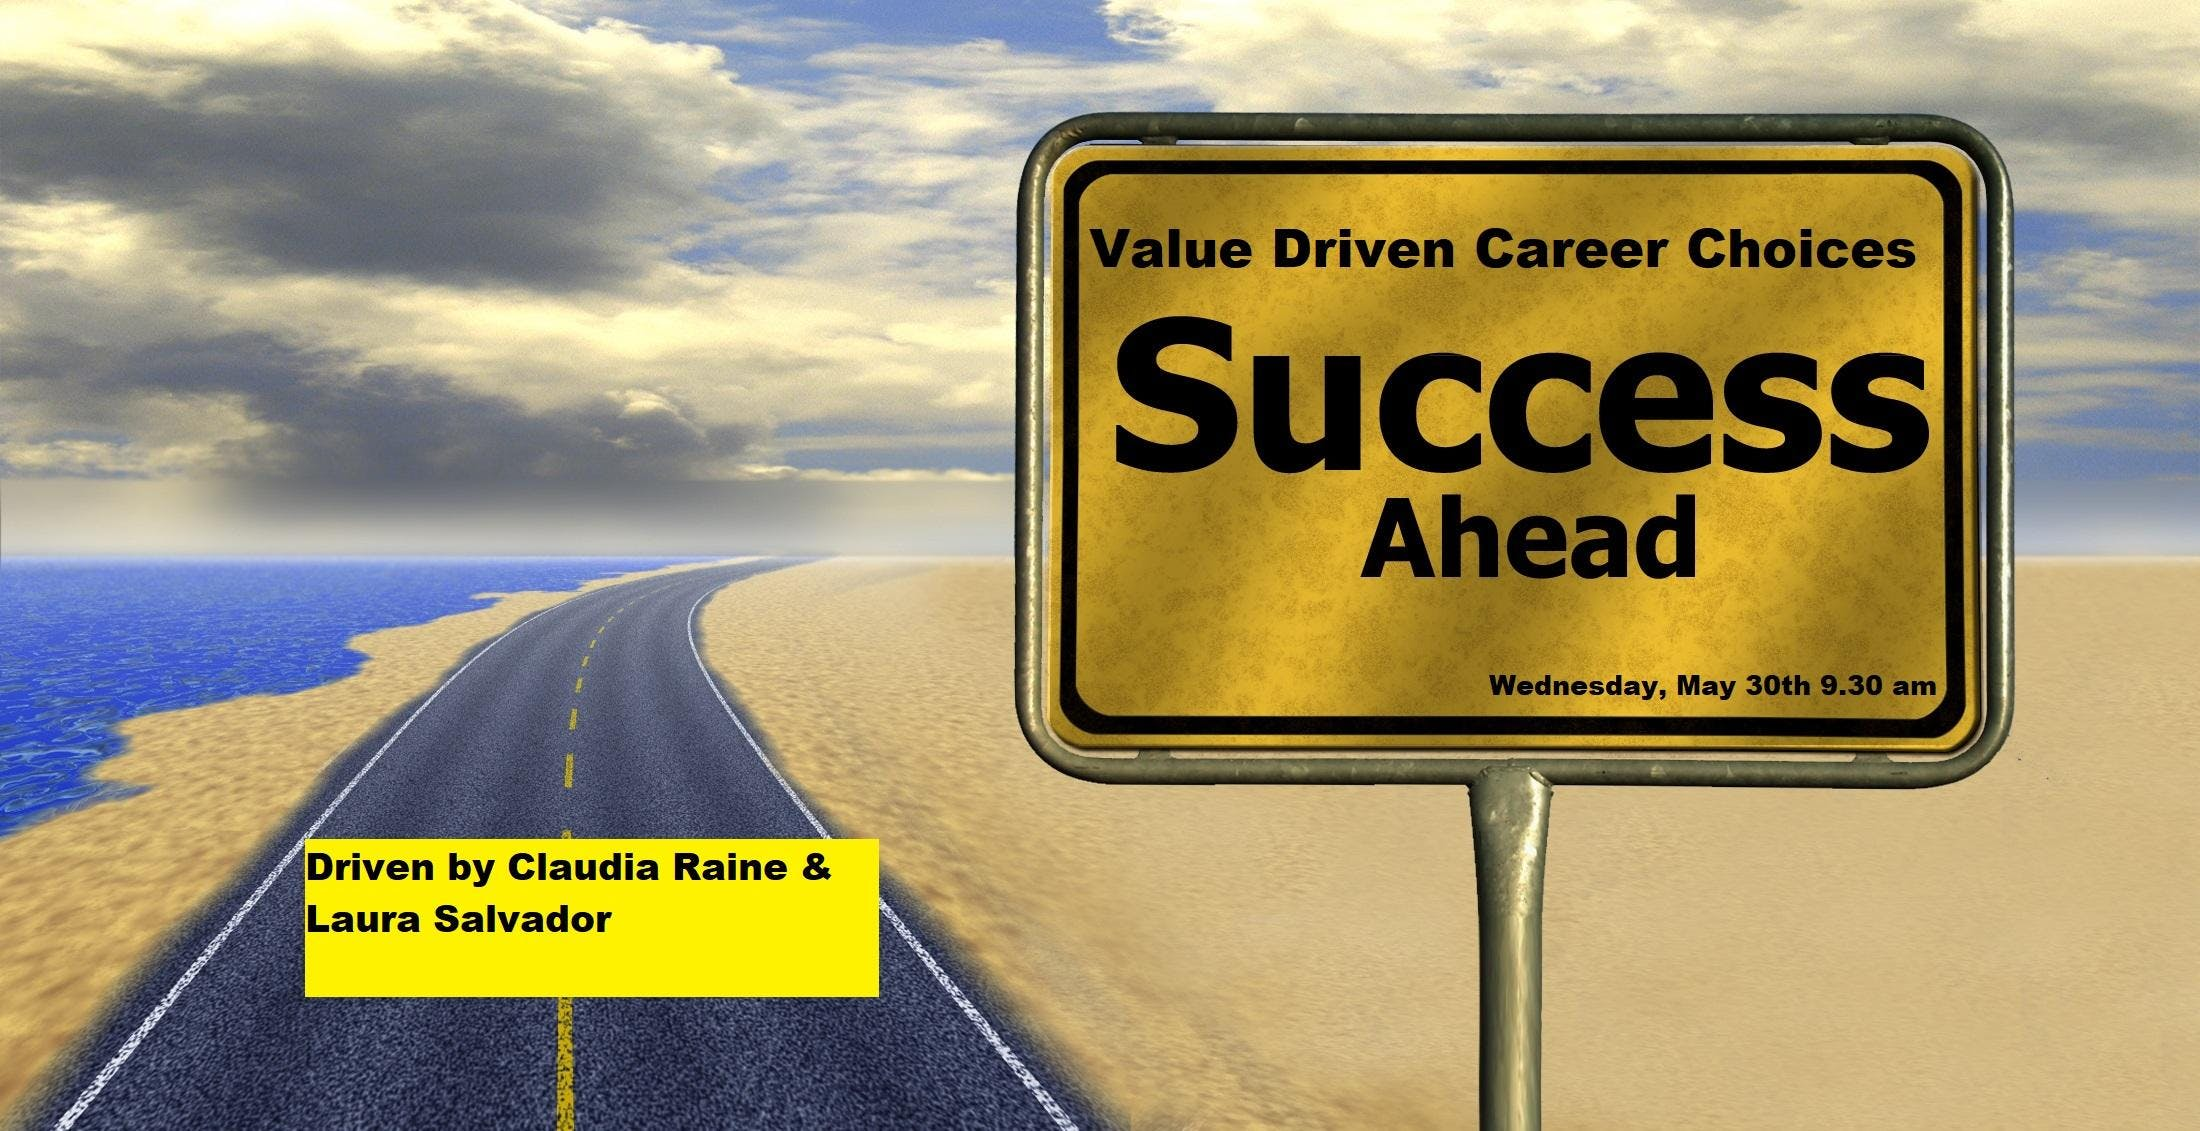 Value Driven Career Choices